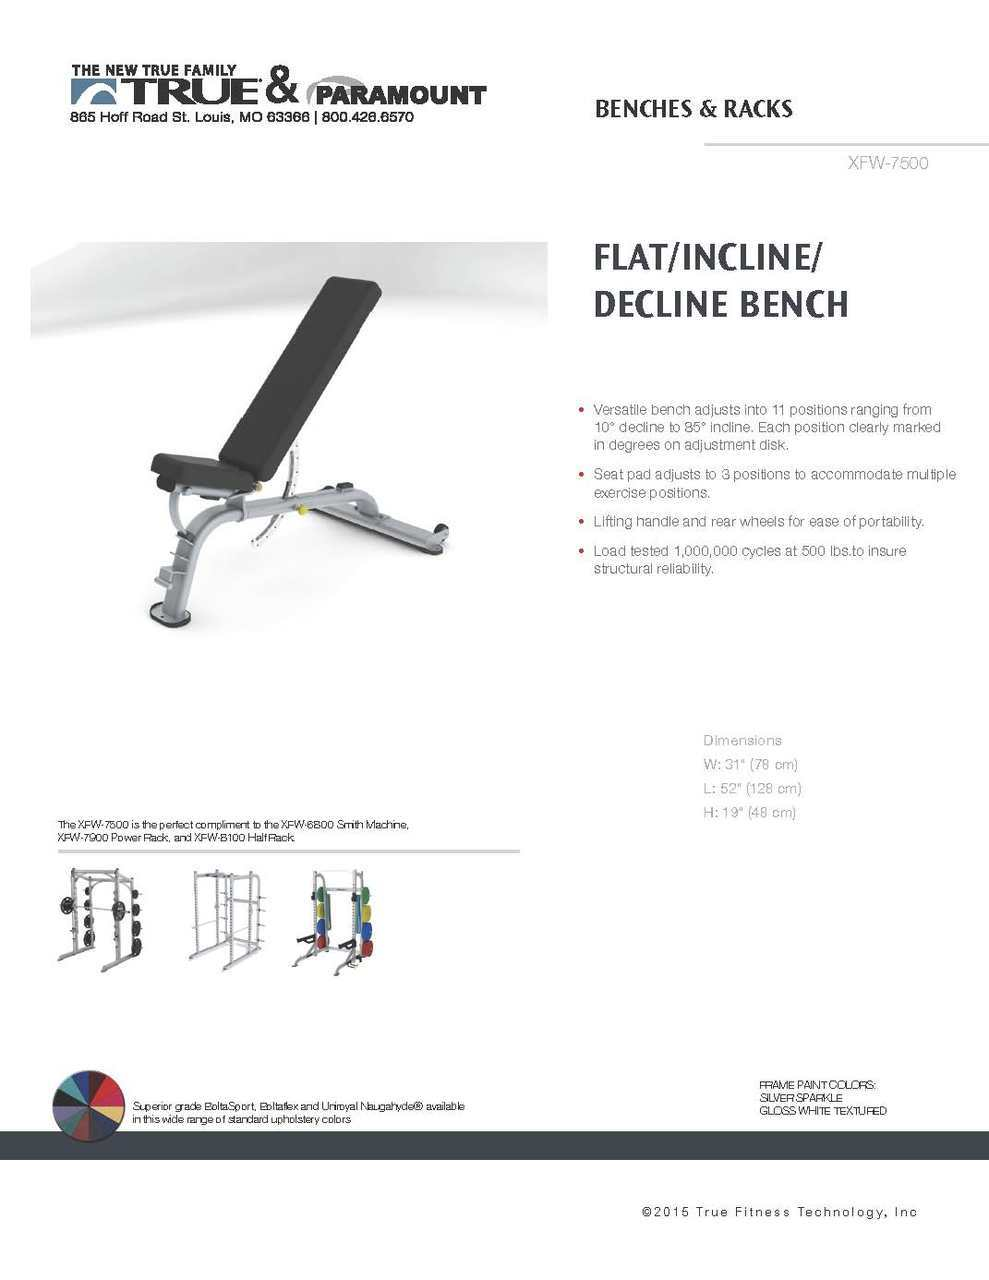 Flat Incline Decline Bench Paramount Fitness Physique